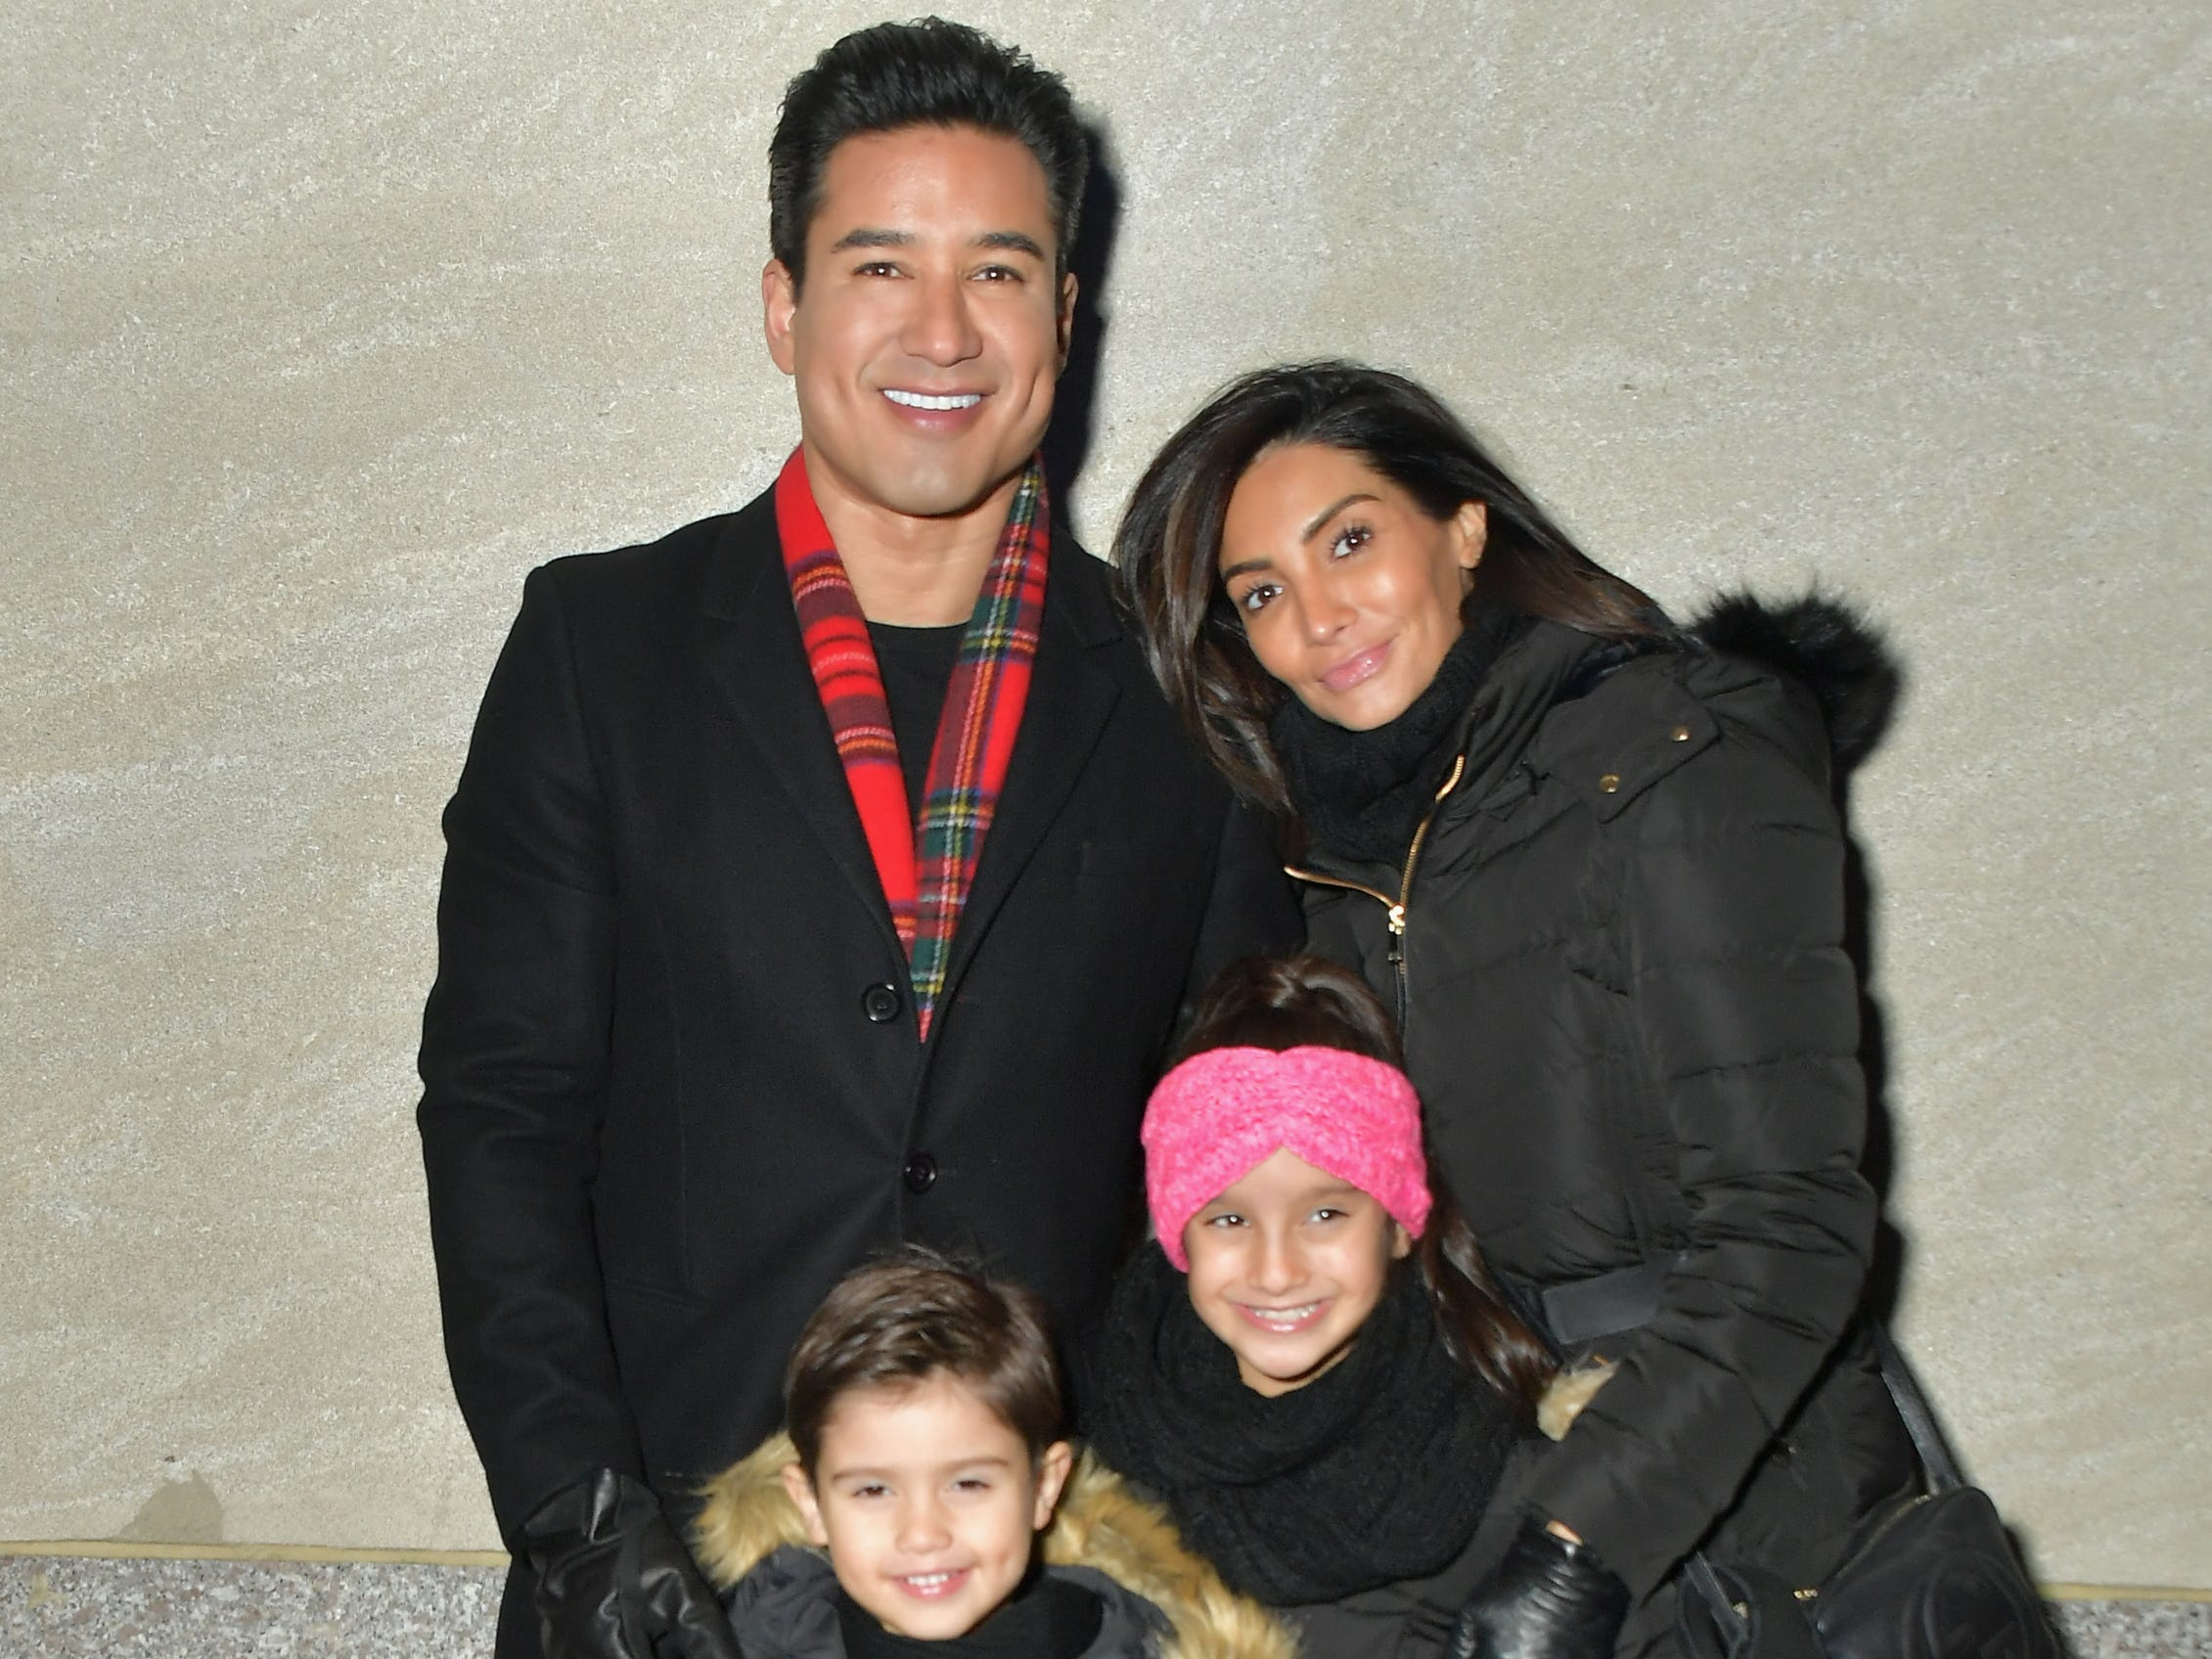 NEW YORK, NEW YORK - NOVEMBER 28: Mario Lopez and family attend the 86th Annual Rockefeller Center Christmas Tree Lighting Ceremony at Rockefeller Center on November 28, 2018 in New York City. (Photo by Michael Loccisano/Getty Images)